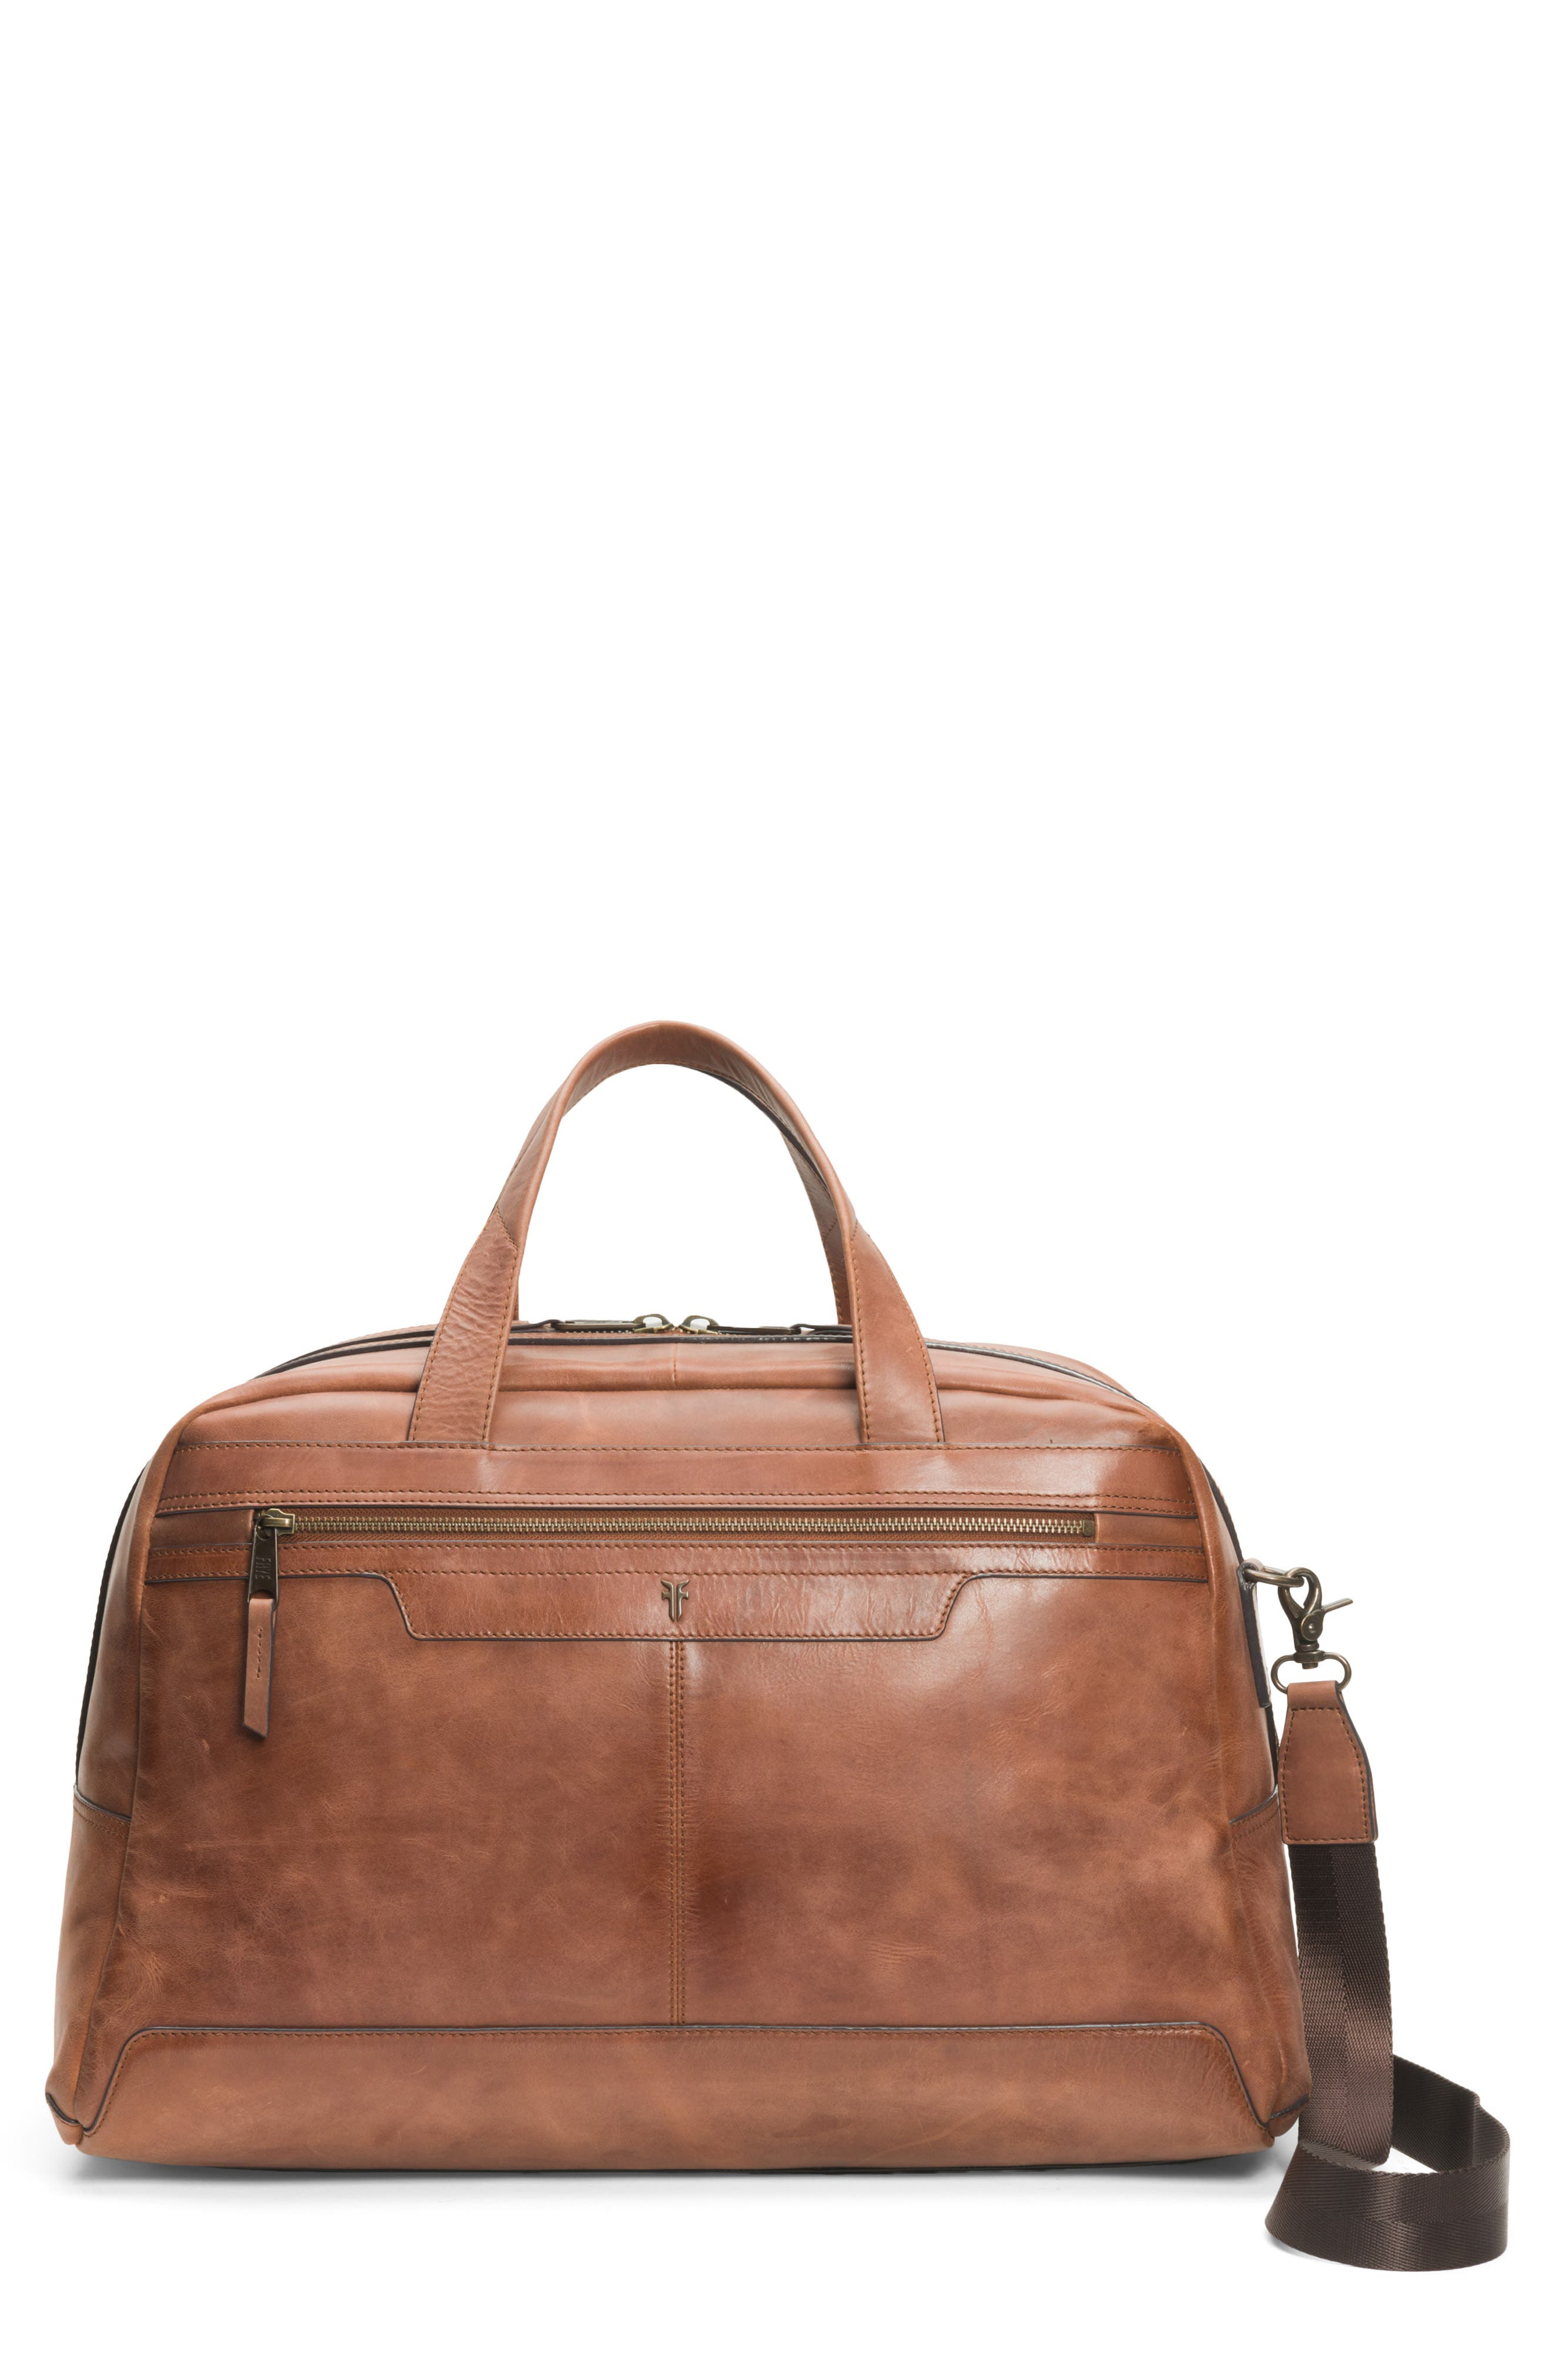 Holden Leather Duffle Bag